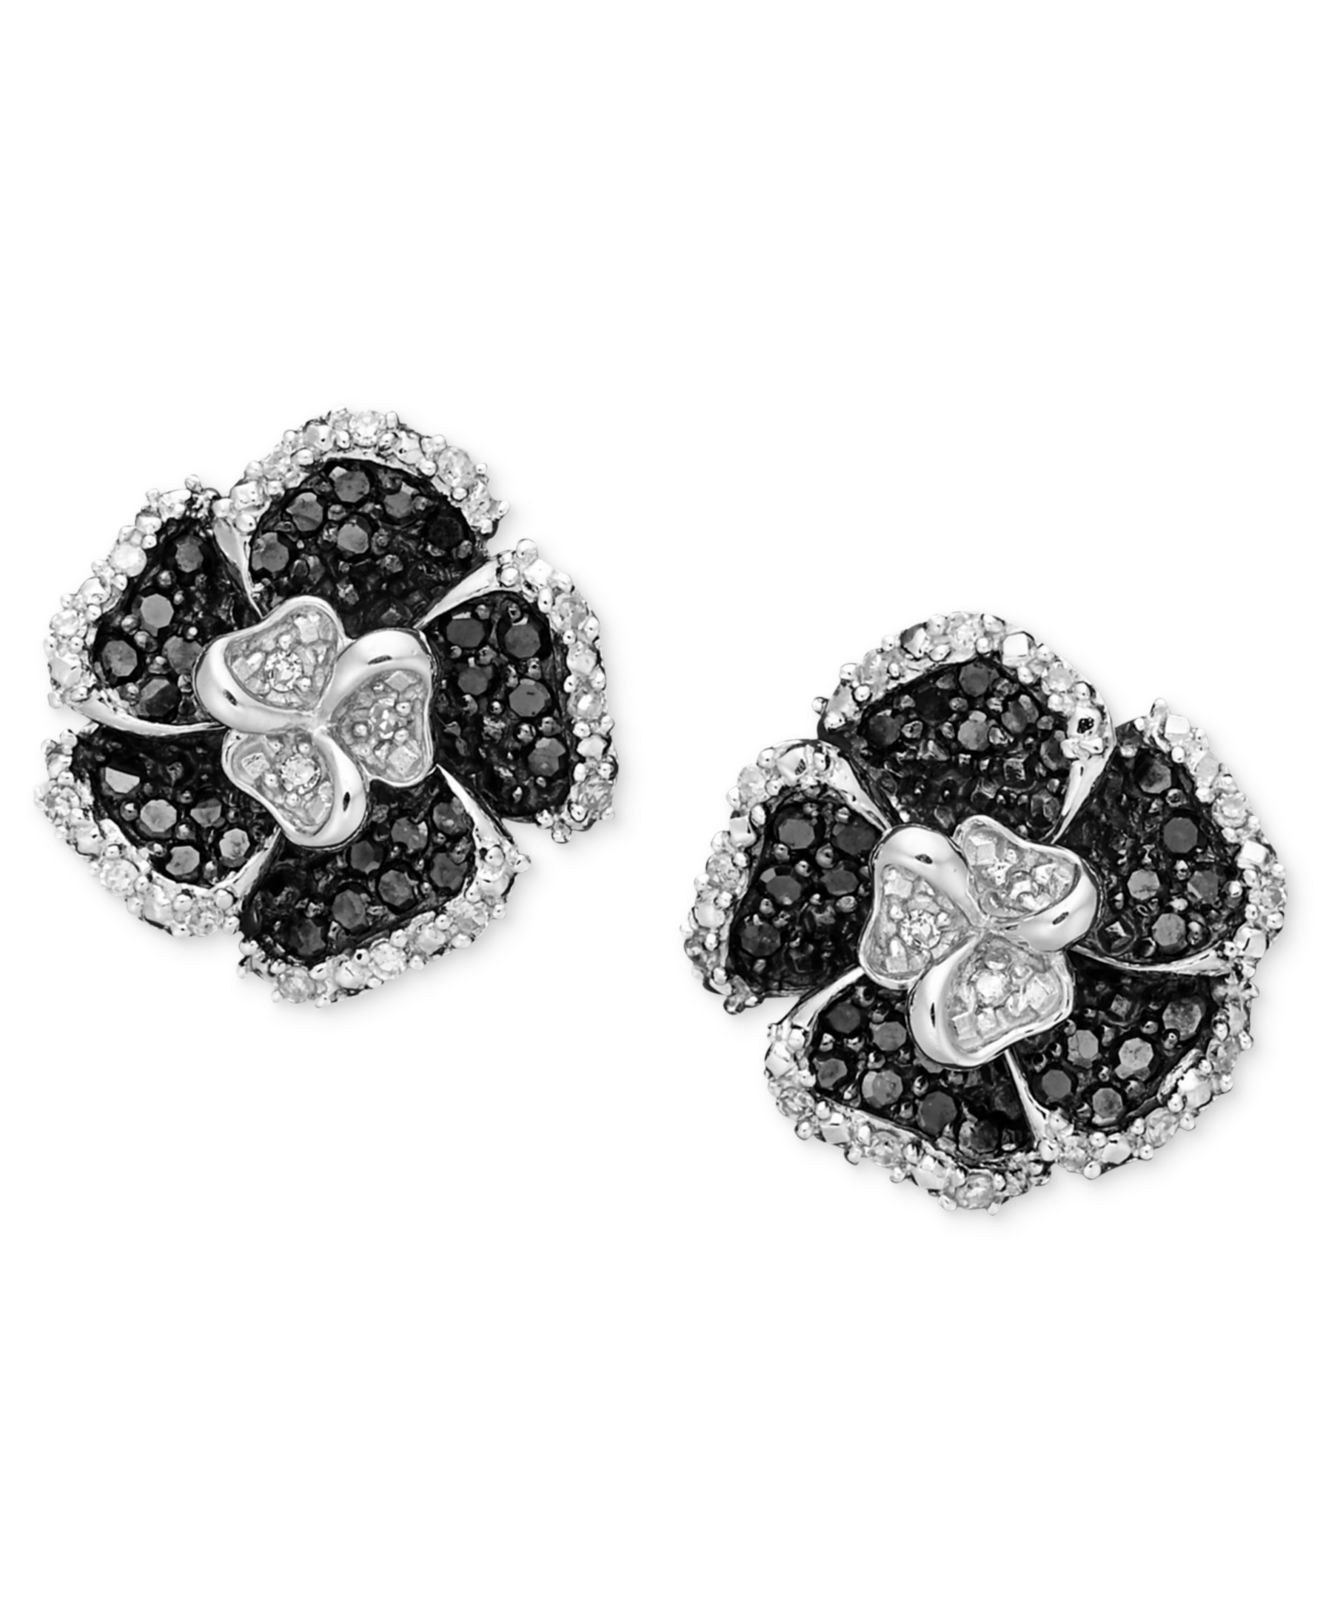 macy 39 s sterling silver earrings onyx and diamond accent. Black Bedroom Furniture Sets. Home Design Ideas